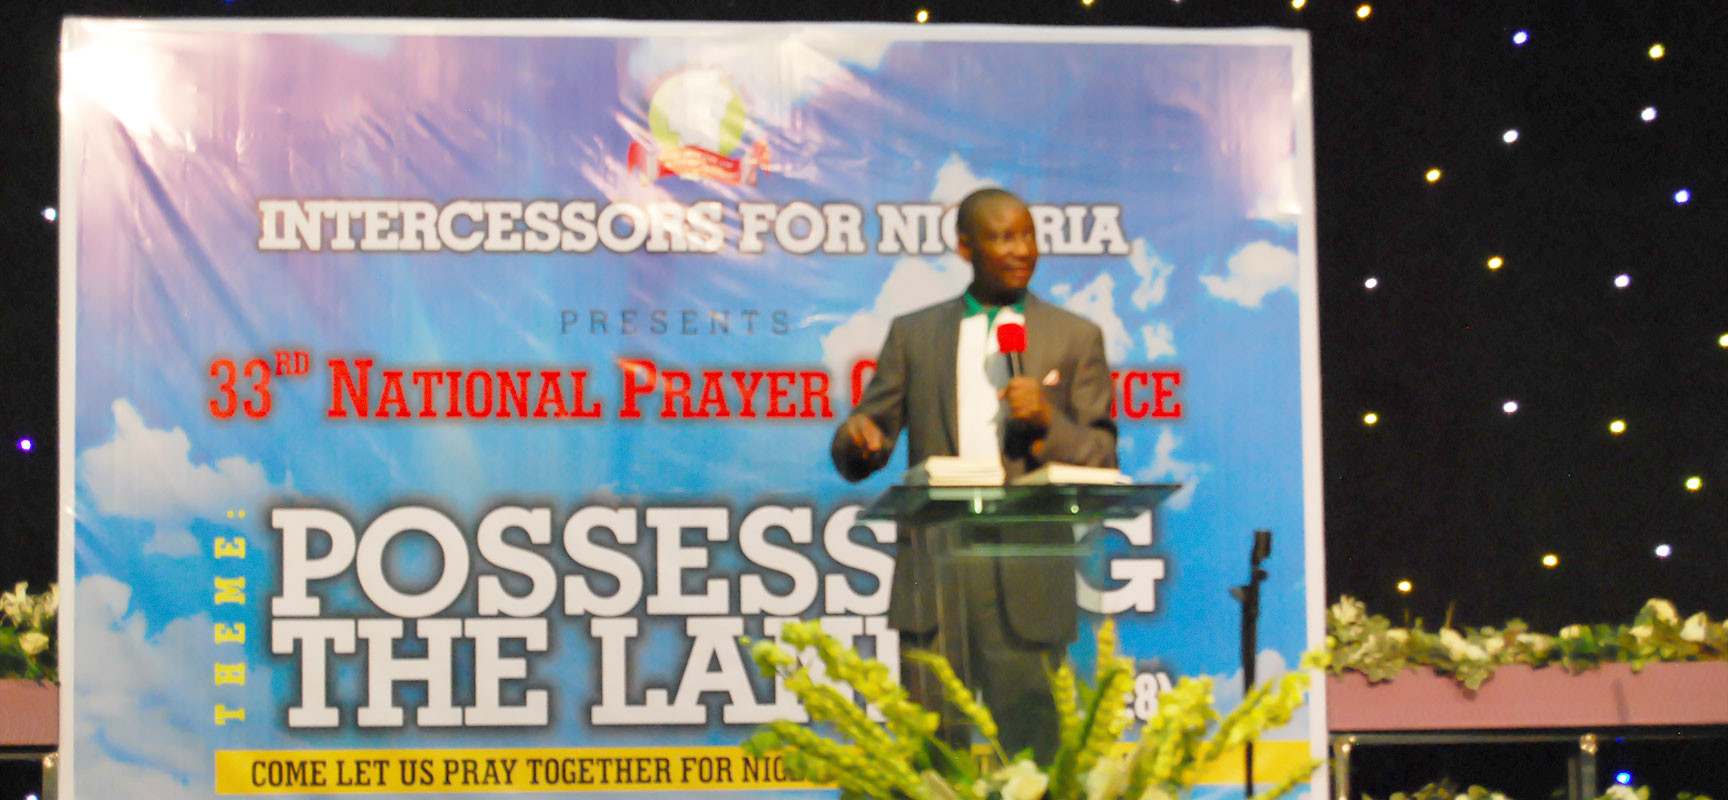 Pastor Olutayo gives his Speech supporting the IFN movement to the Glory of God.